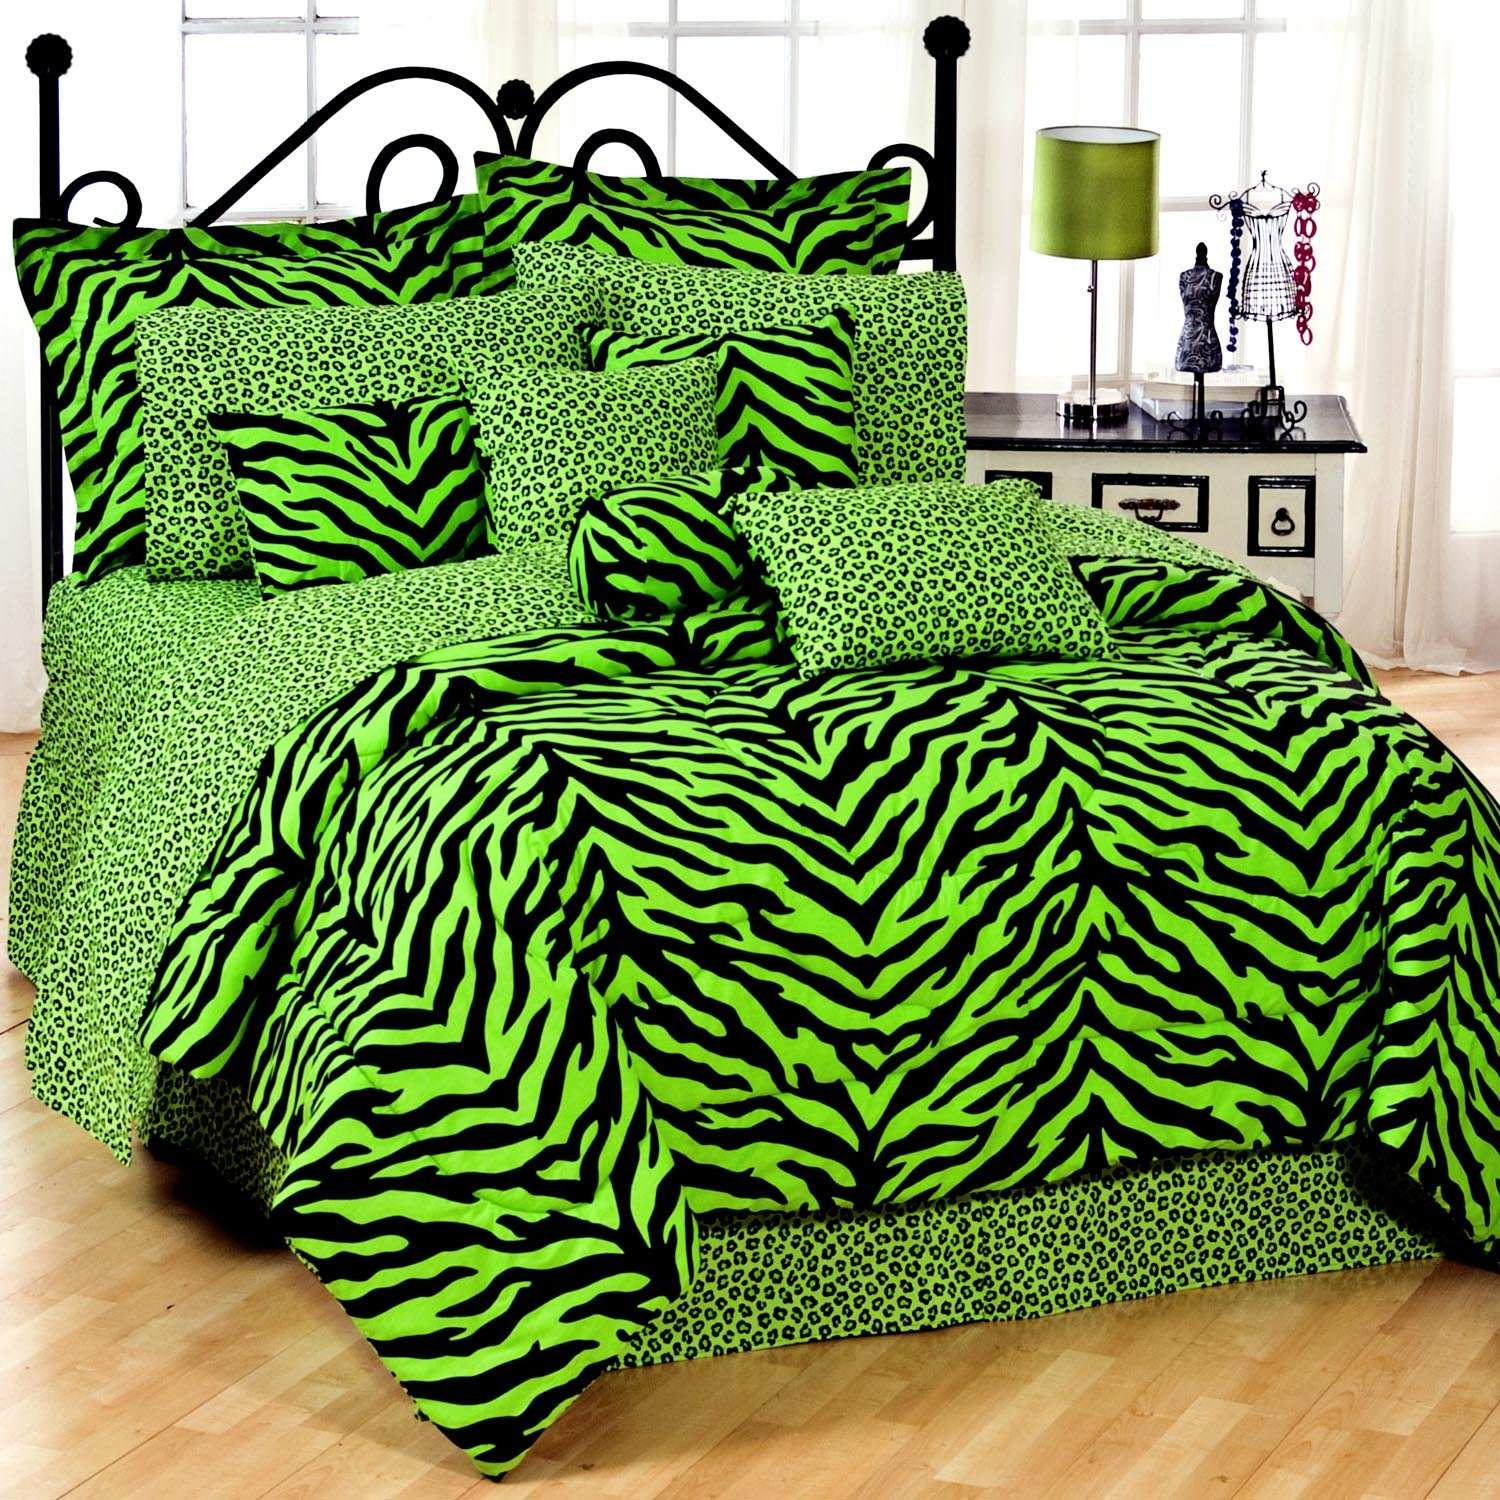 green bedding comforter sets archives bedroom decor ideas